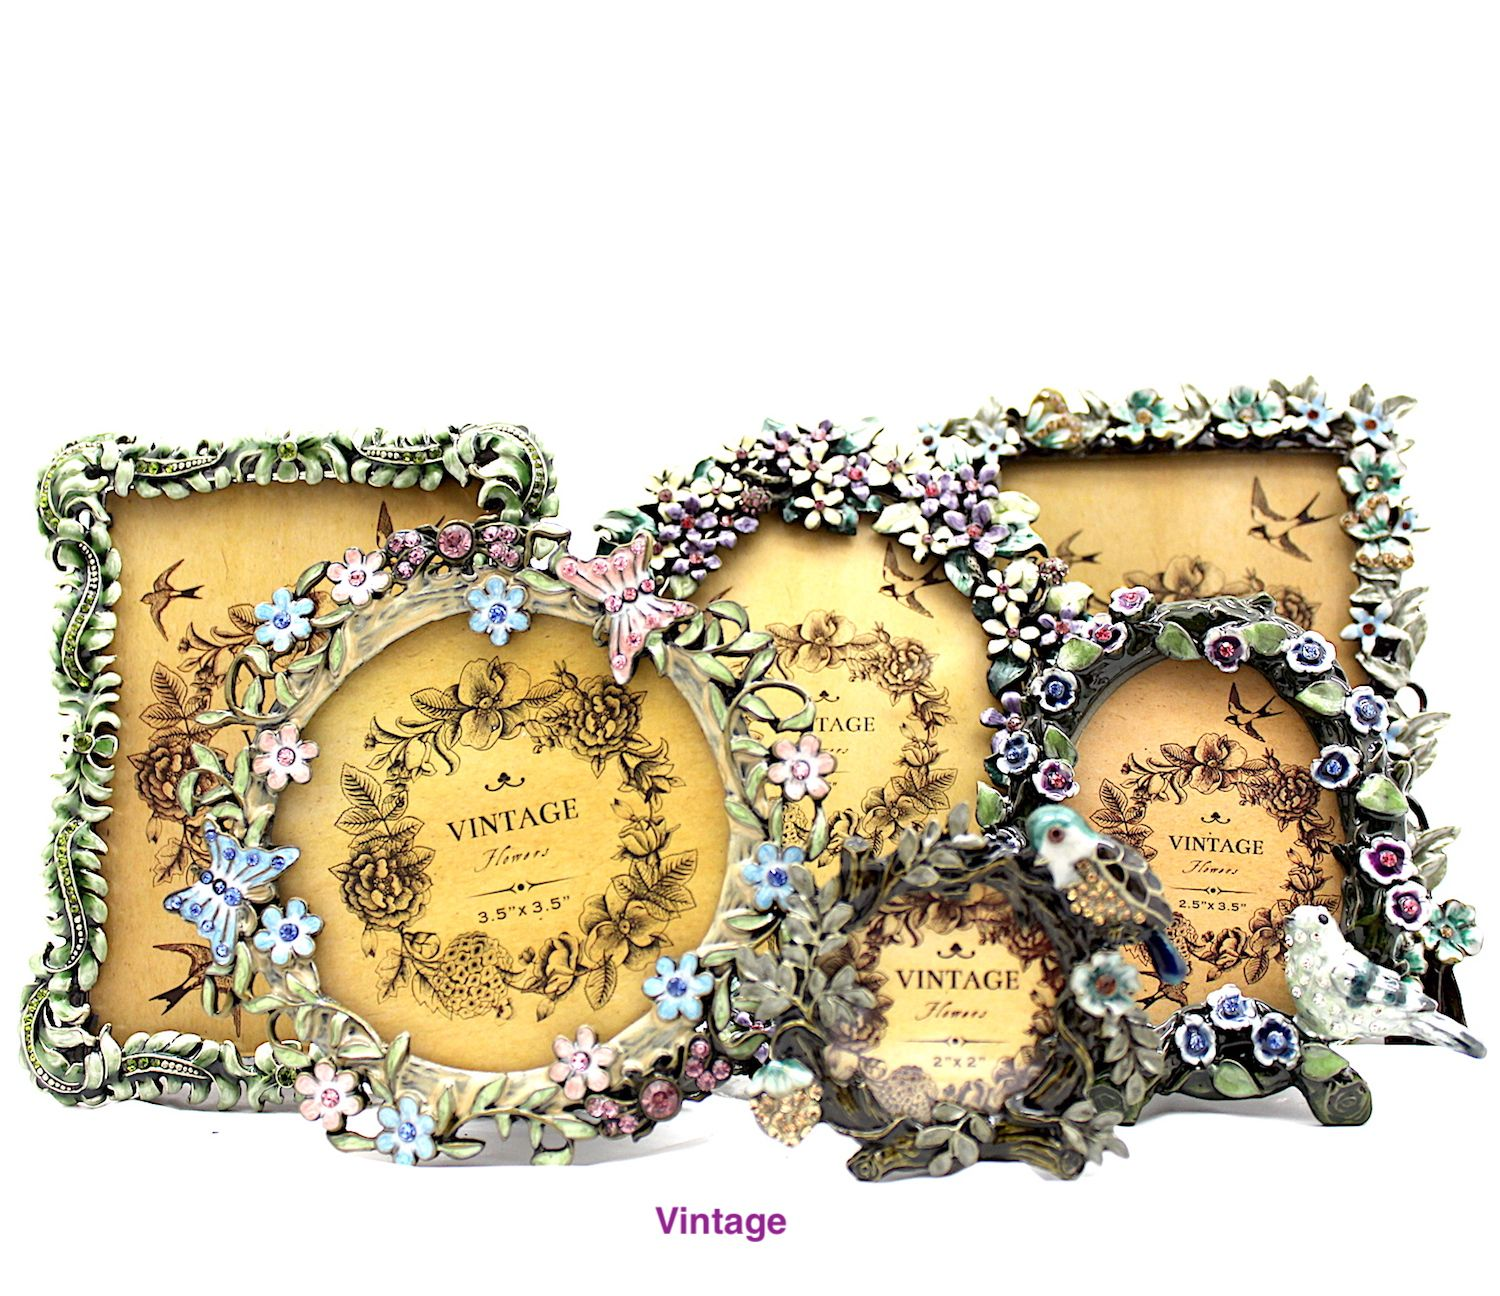 Vintage photo frames, ornate, embellished with crystals